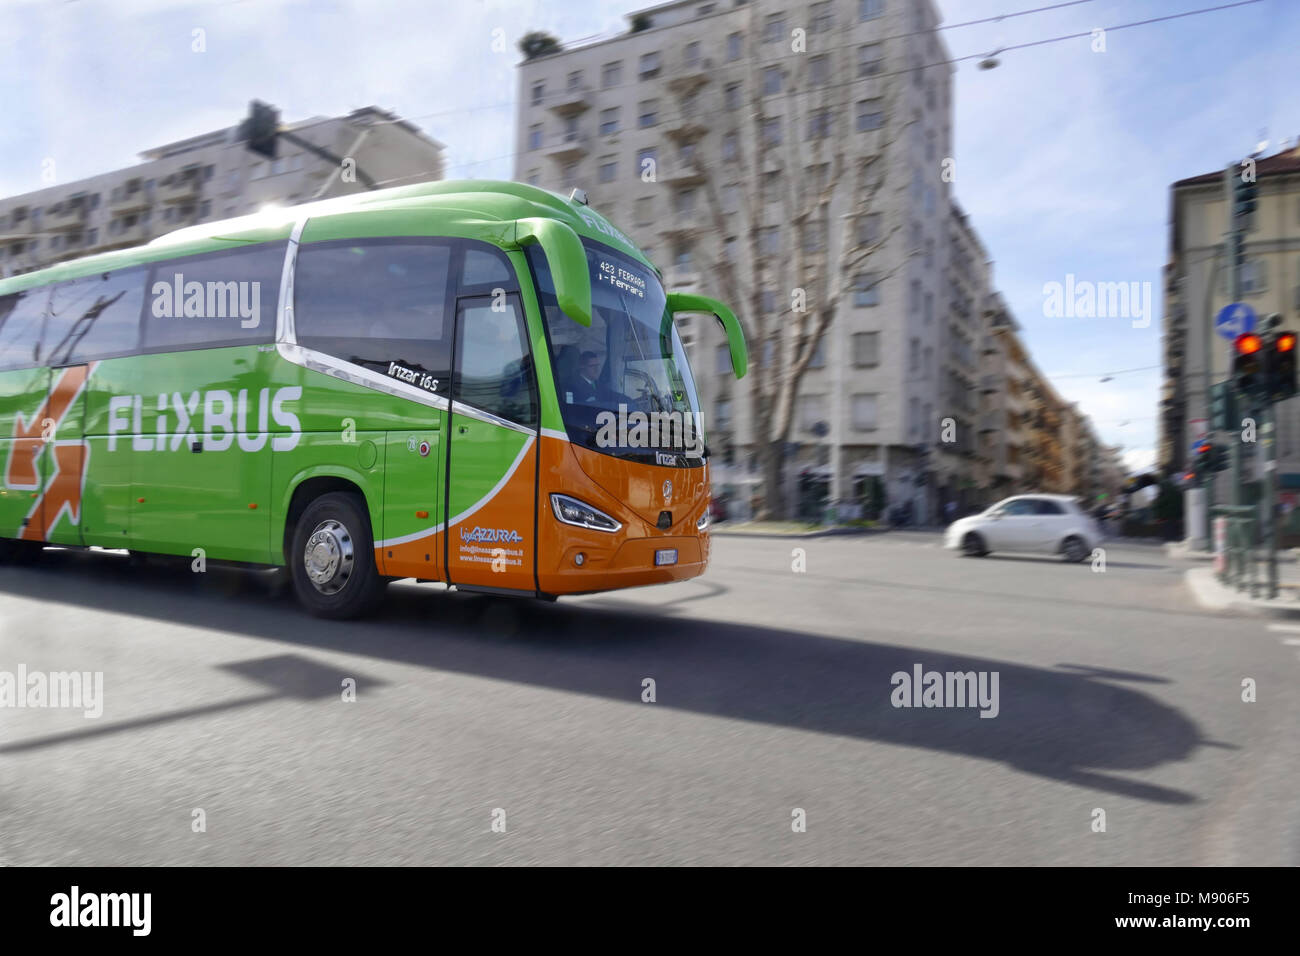 Flixbus long distance bus brand to all european destinations Turin Italy March 14 2018 panning effect - Stock Image